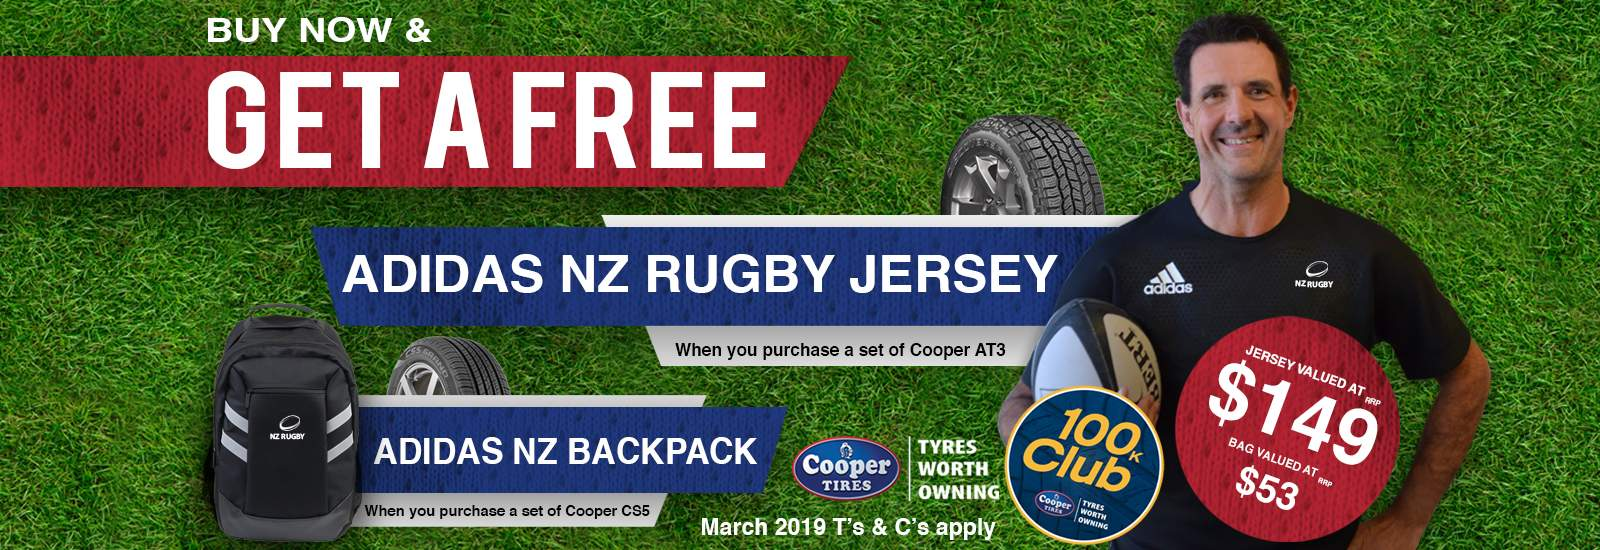 cooper-tires-adidas-nz-rugby-jersery